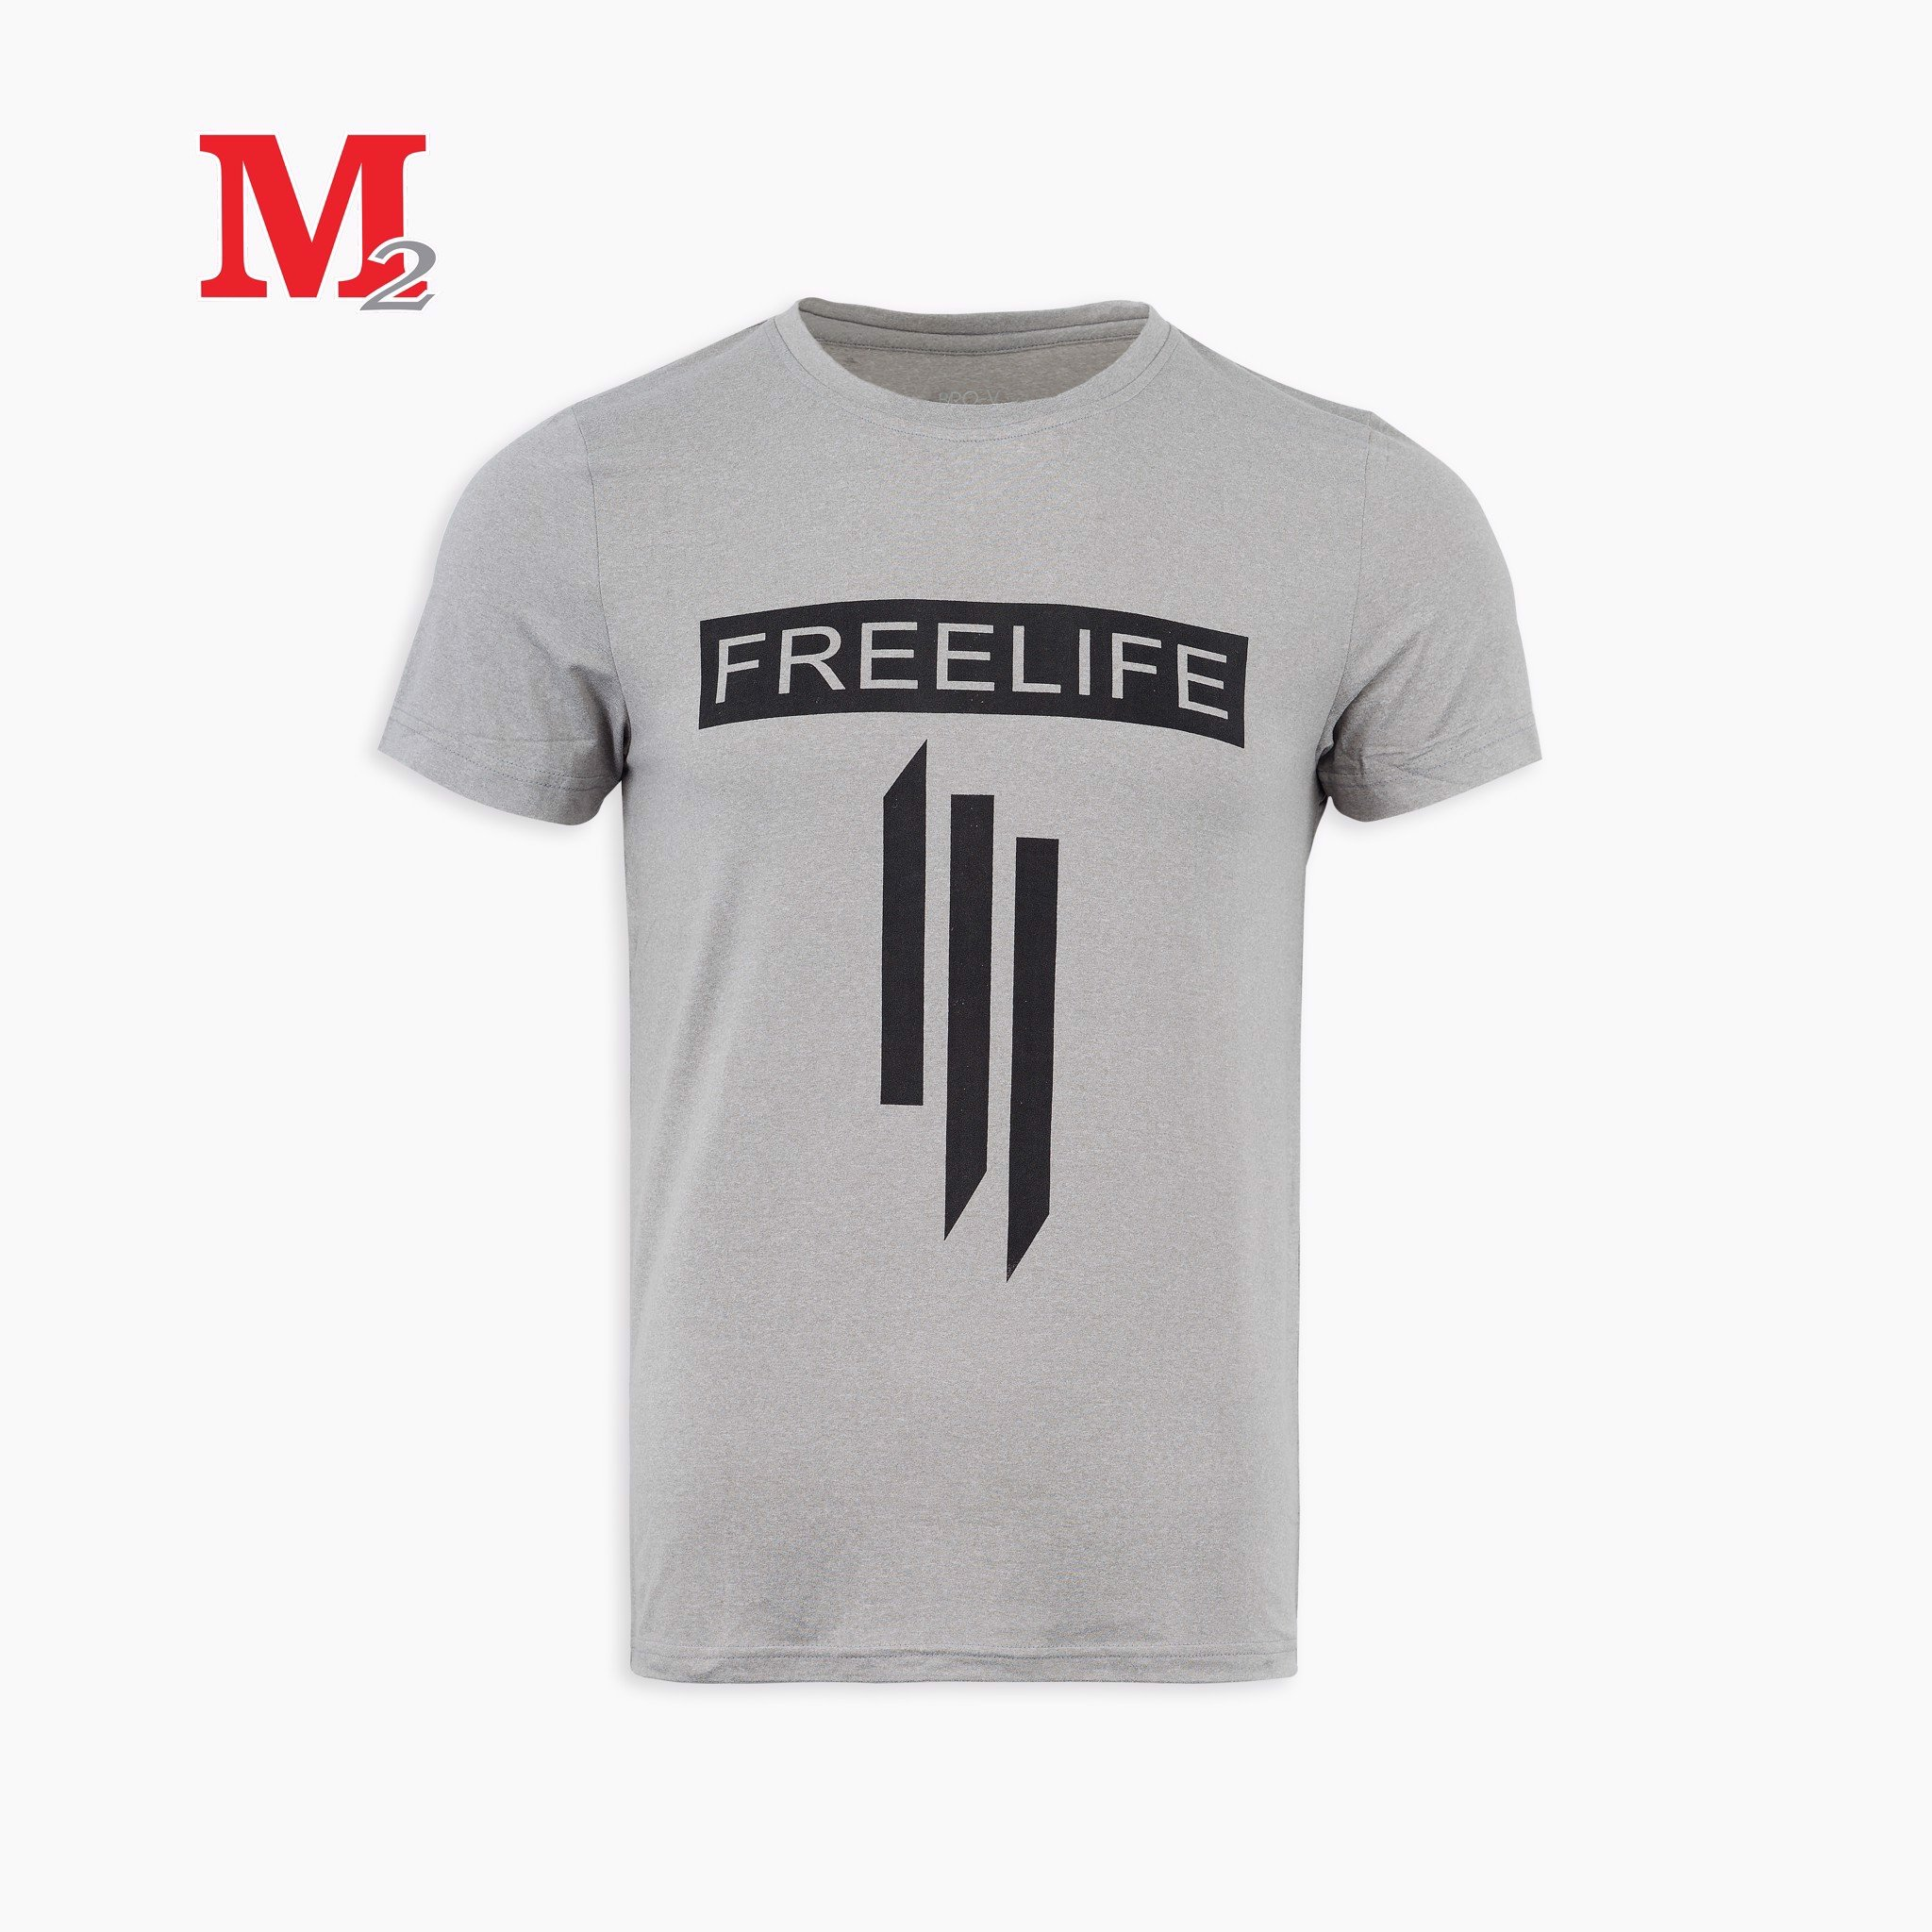 Áo  Tshirt MCT in FREELIFE